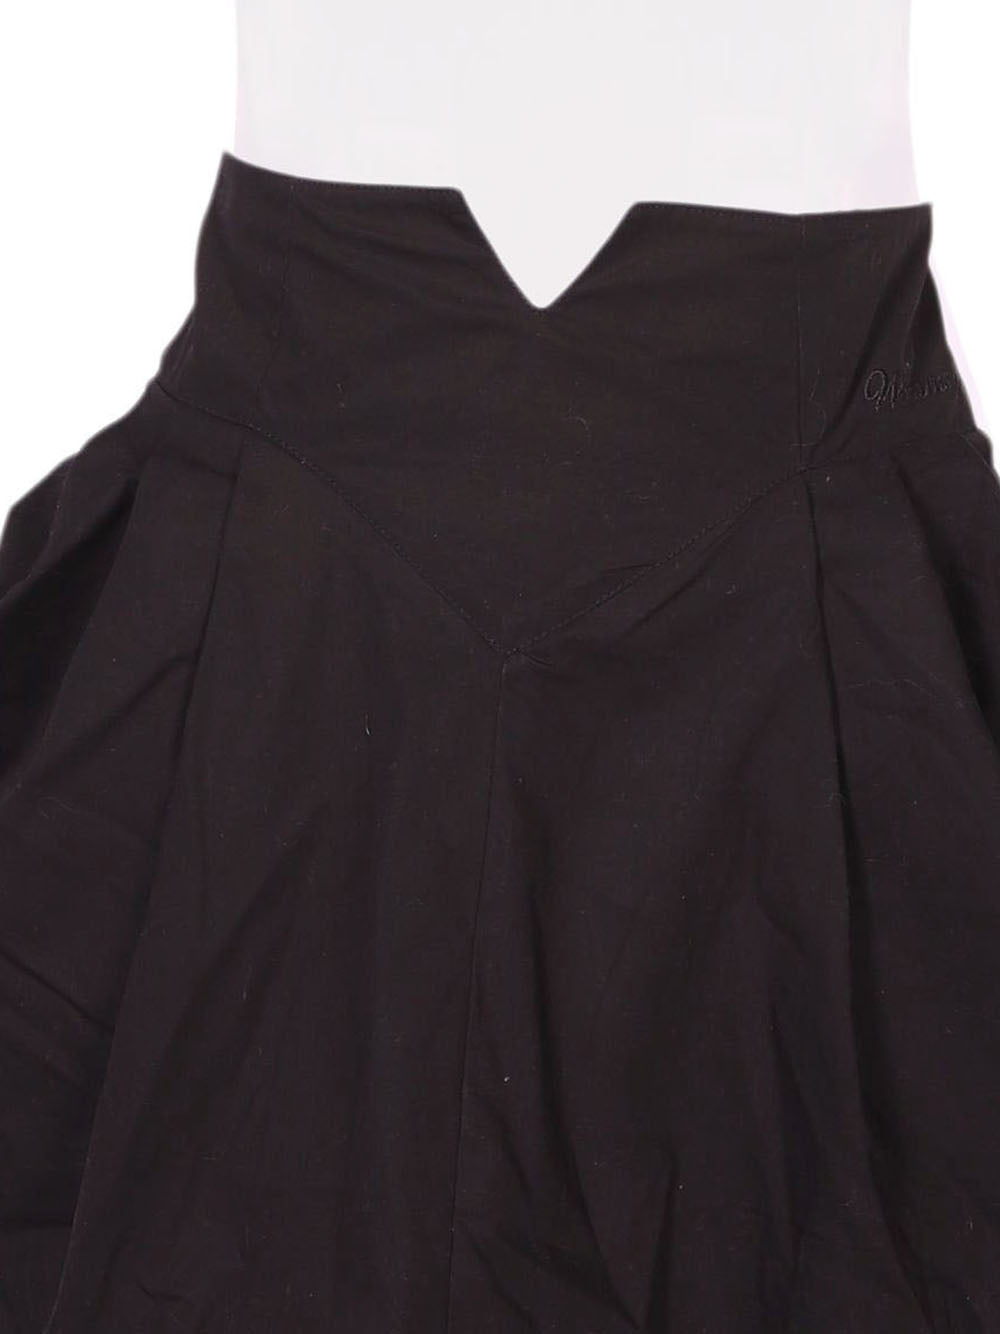 Detail photo of Preloved WANAMA Black Woman's skirt - size 14/XL